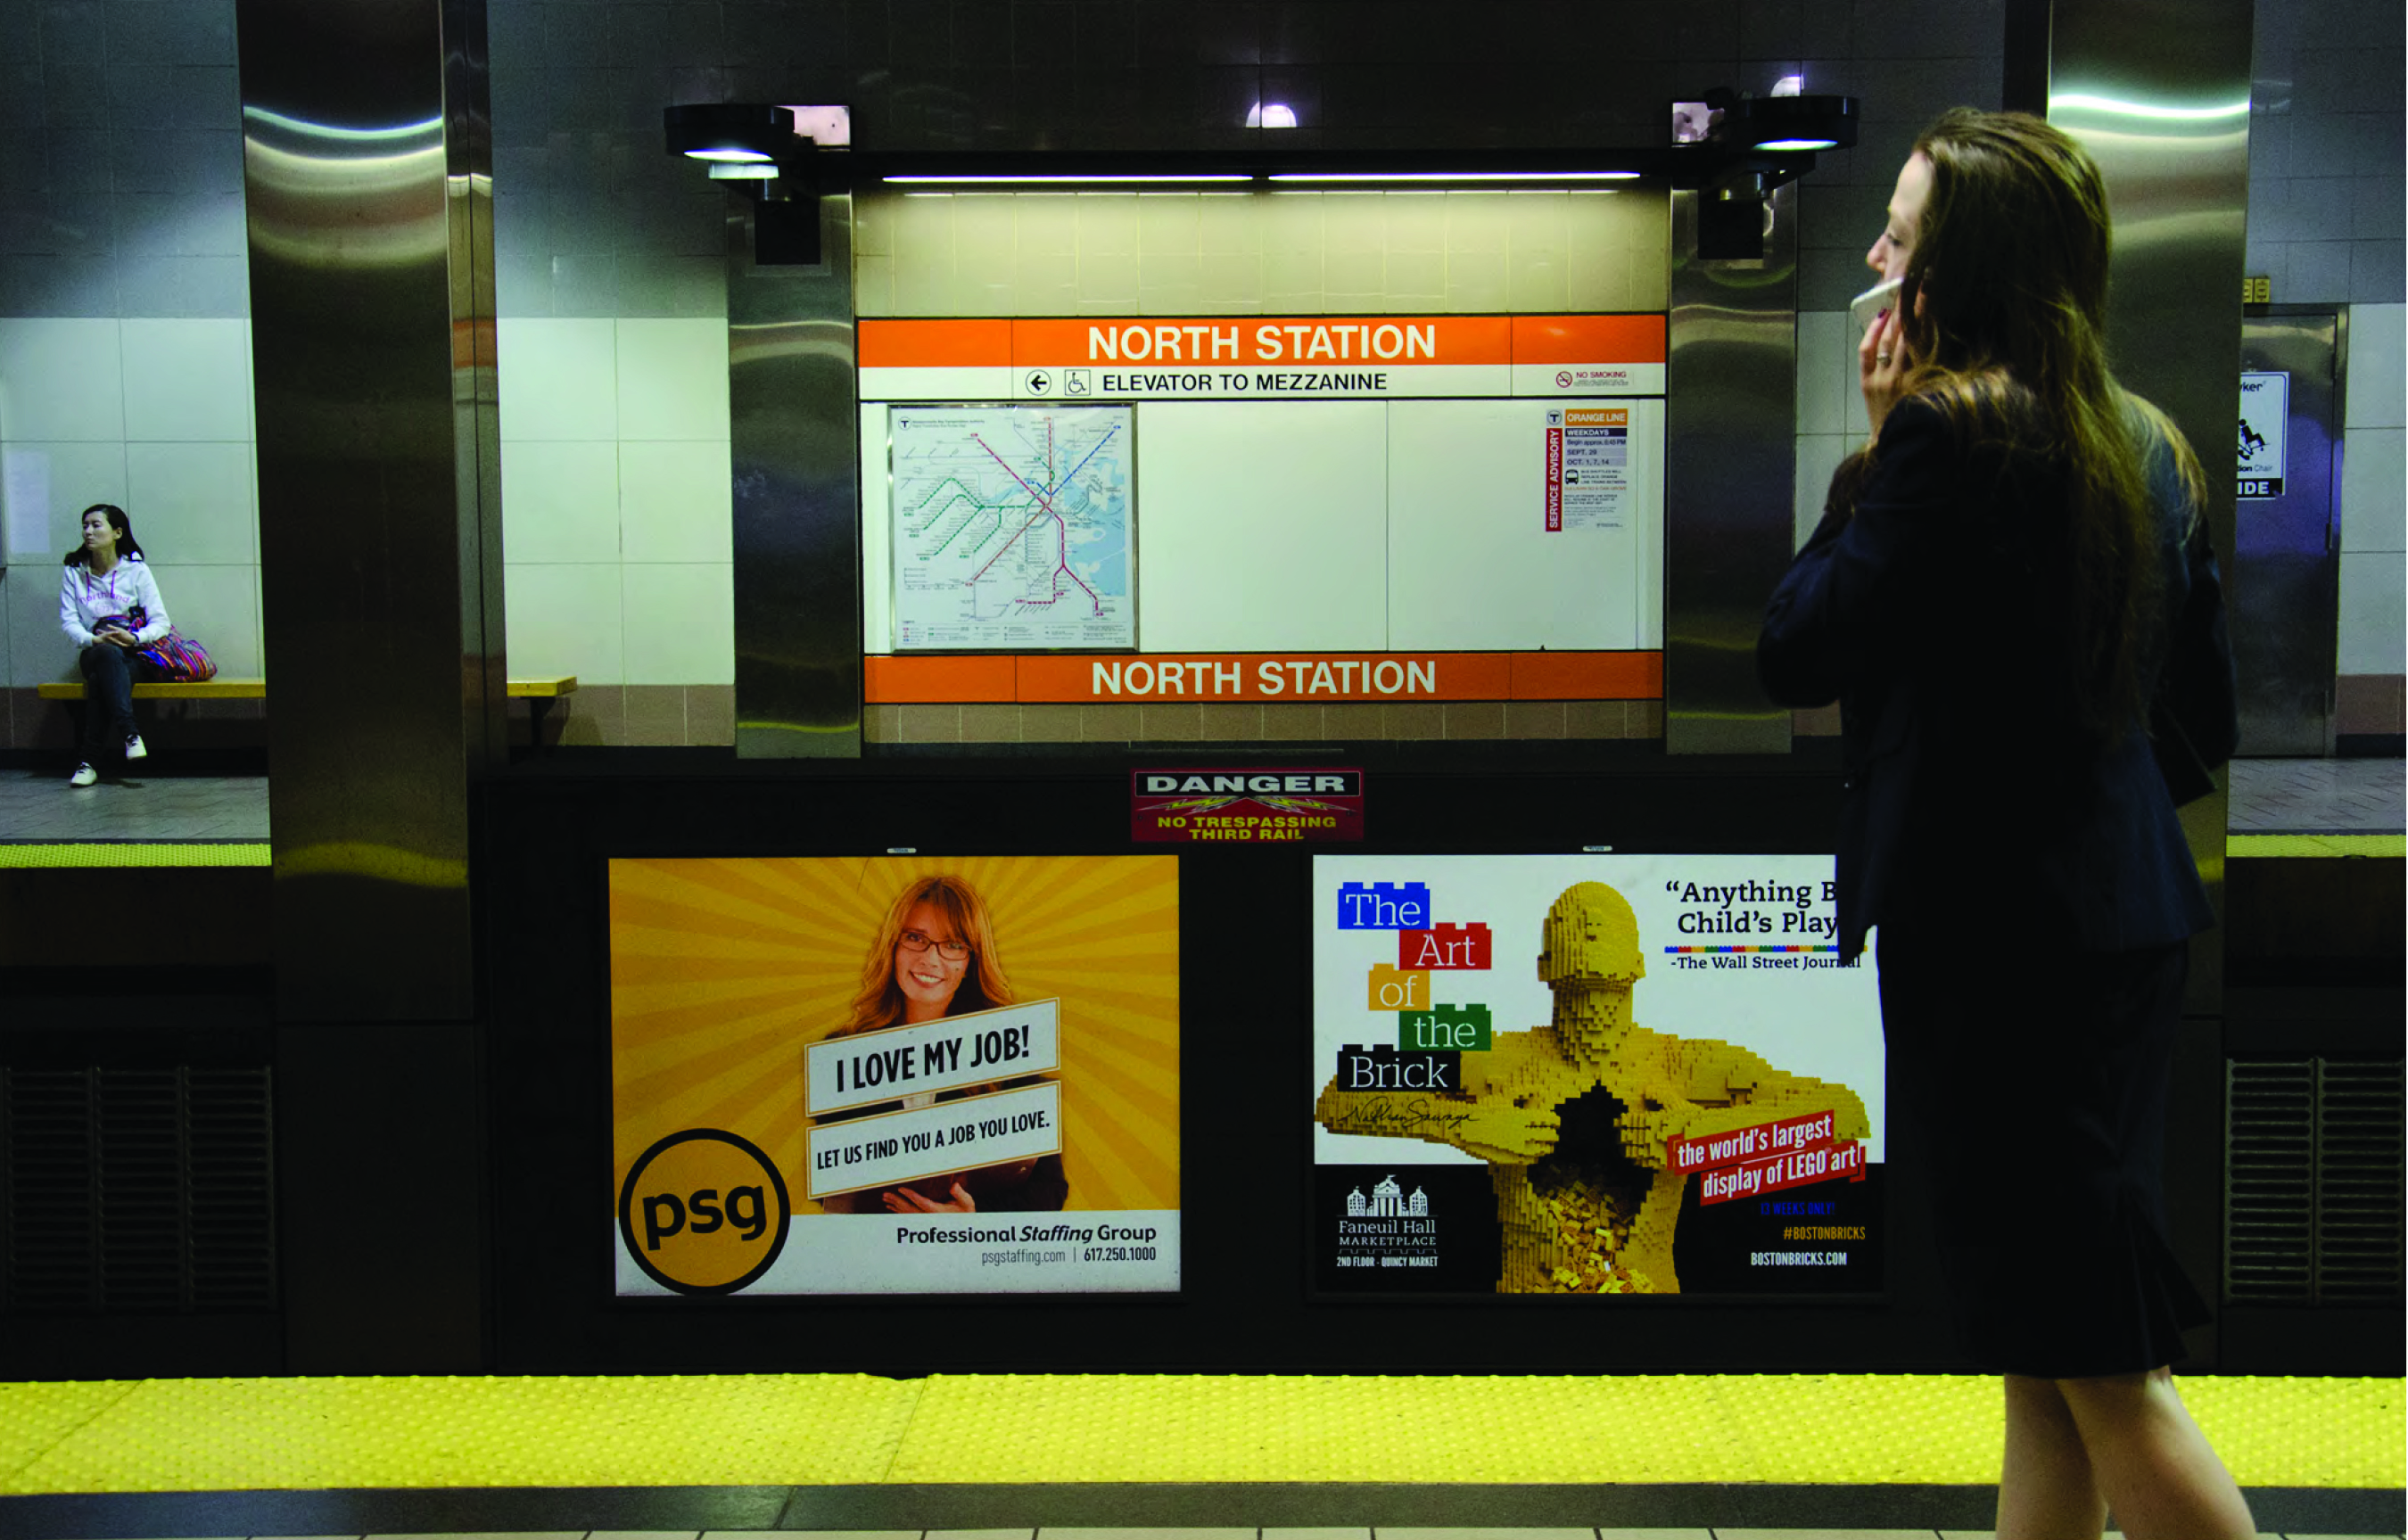 The Art of the Brick Transit Ad